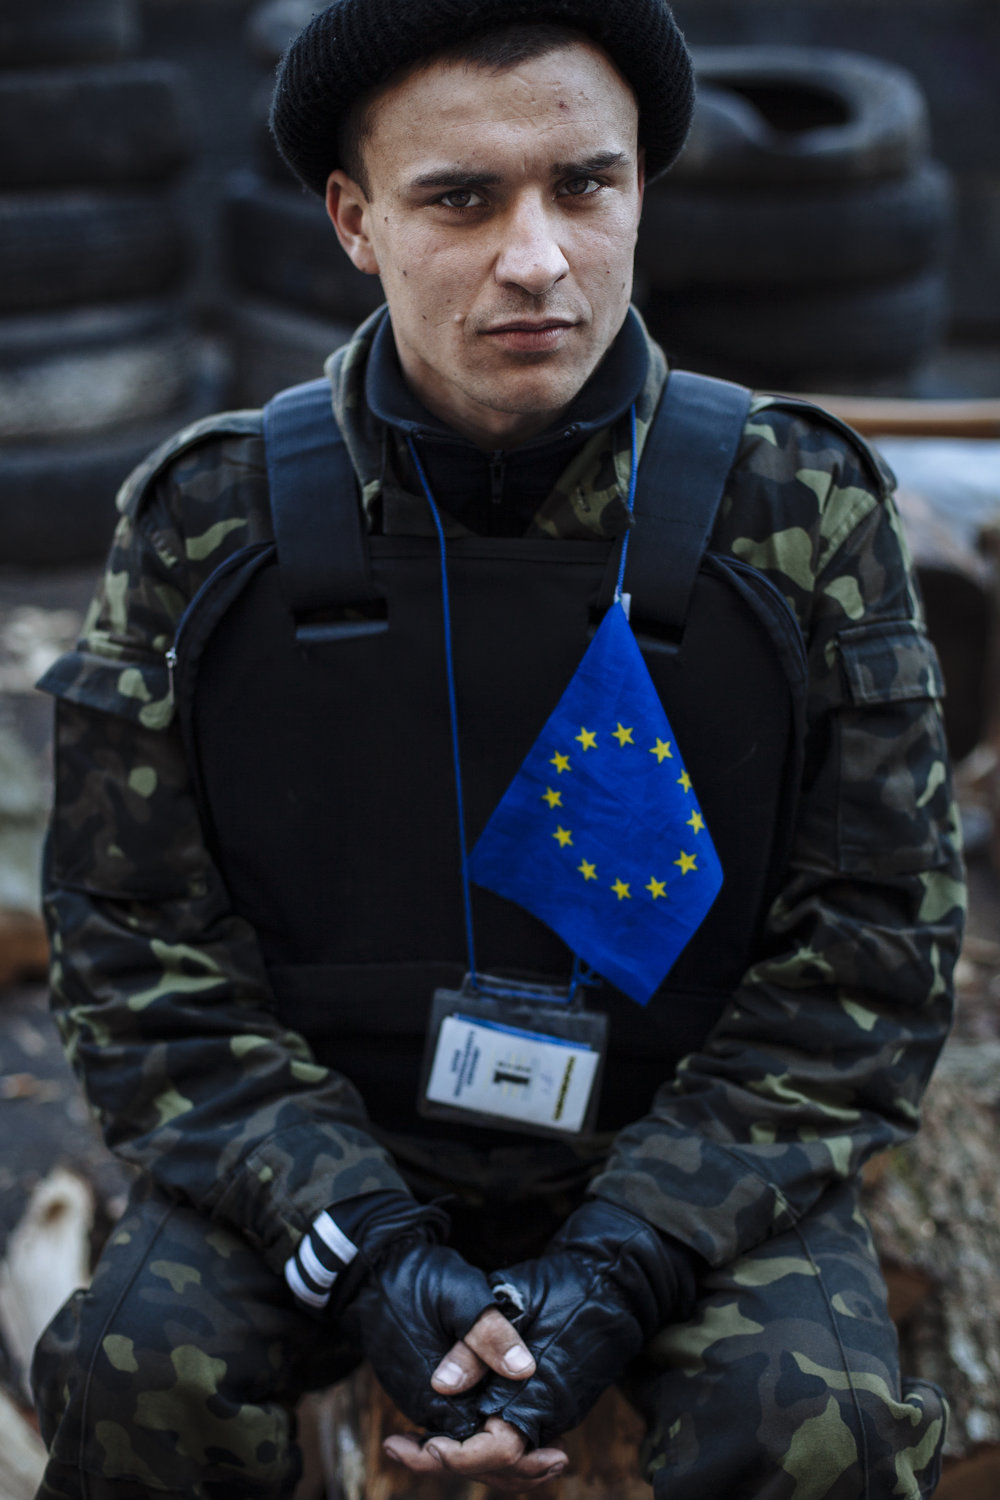 A self defense volunteer with a European Union flag affixed to his protective vest guards a barricade in Kiev's Independence Square, Ukraine, Tuesday, March 11, 2014. (AP Photo/David Azia)